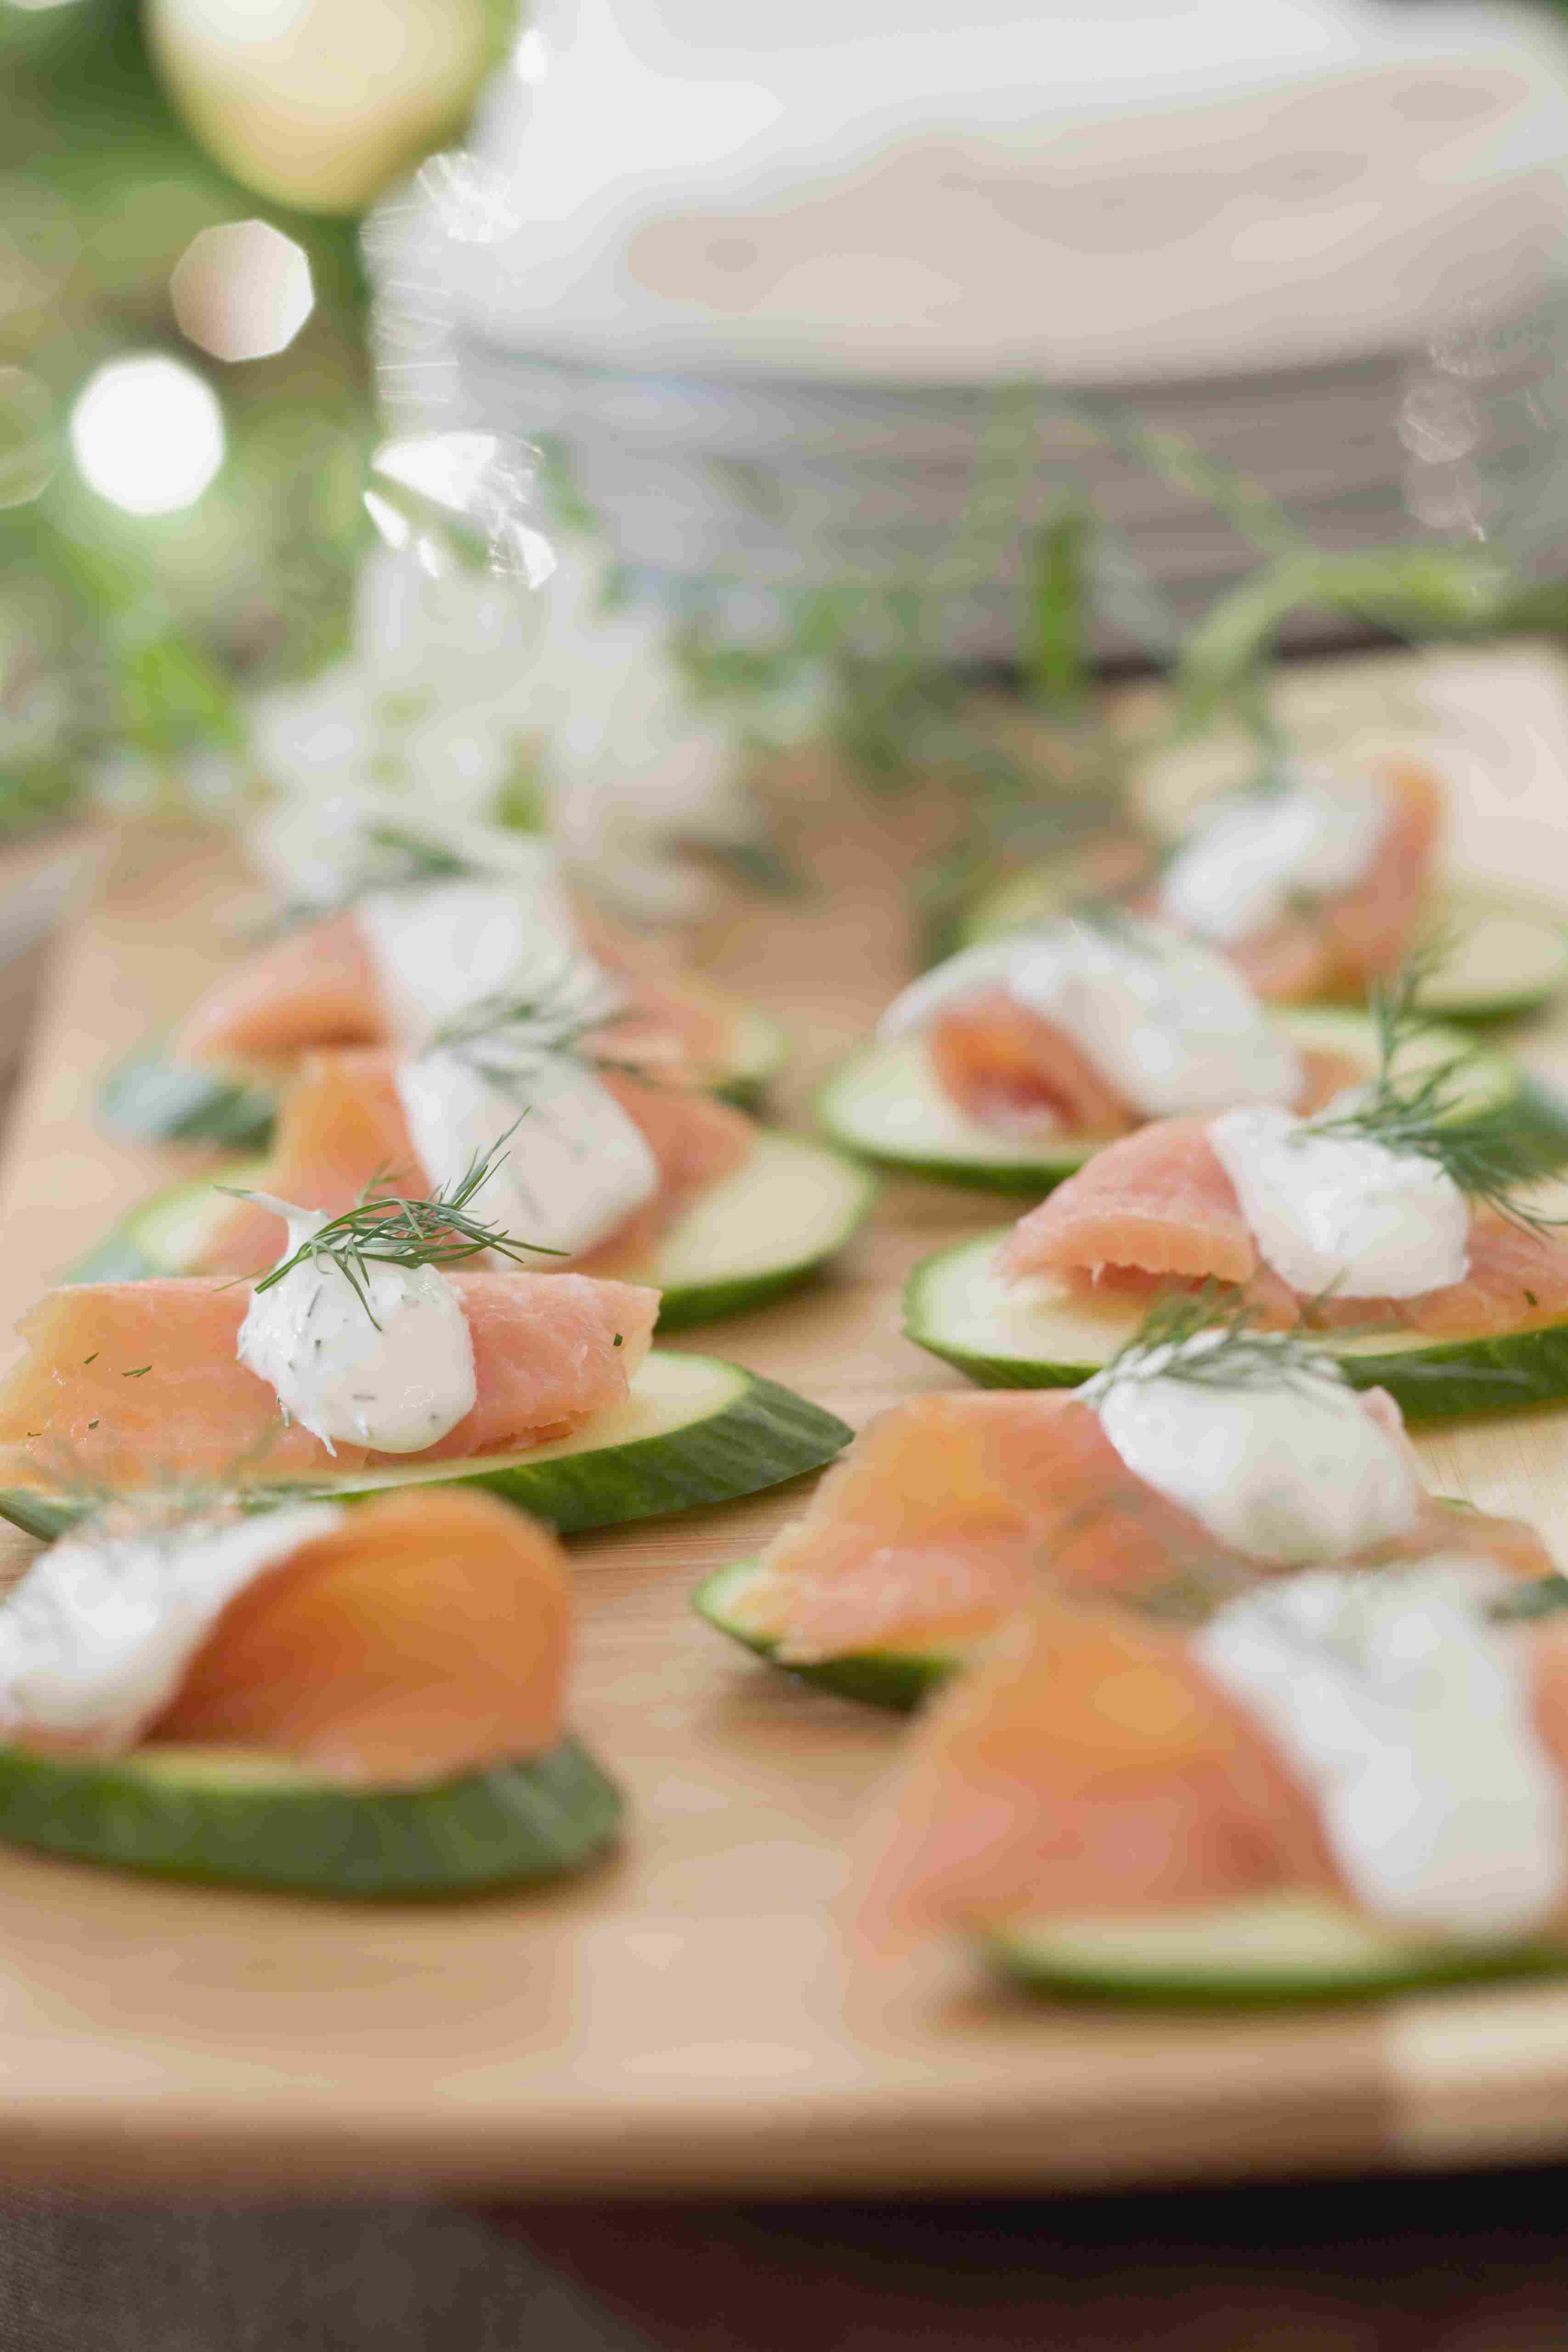 Smoked salmon with dill sauce and cucumbers